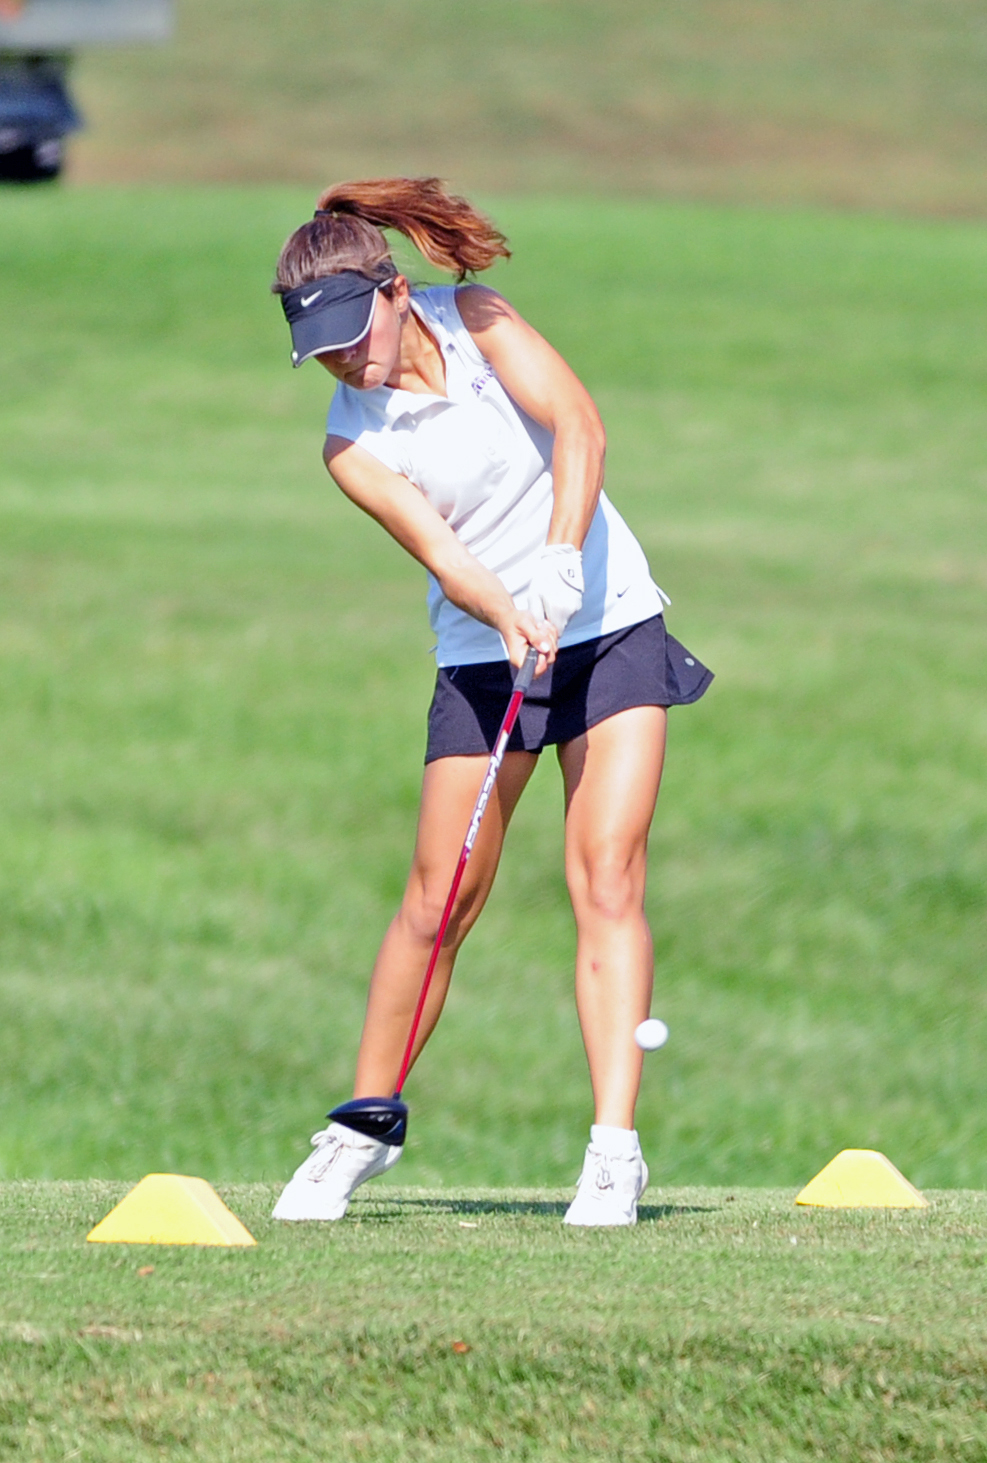 NICK INGRAM/Citizen photo Park Hill South junior Maddie Hill hits a drive during the Class 2 Sectional 4 tournament held Monday, Oct. 2 on the Posse Course at Paradise Pointe Golf Complex in Smithville, Mo.